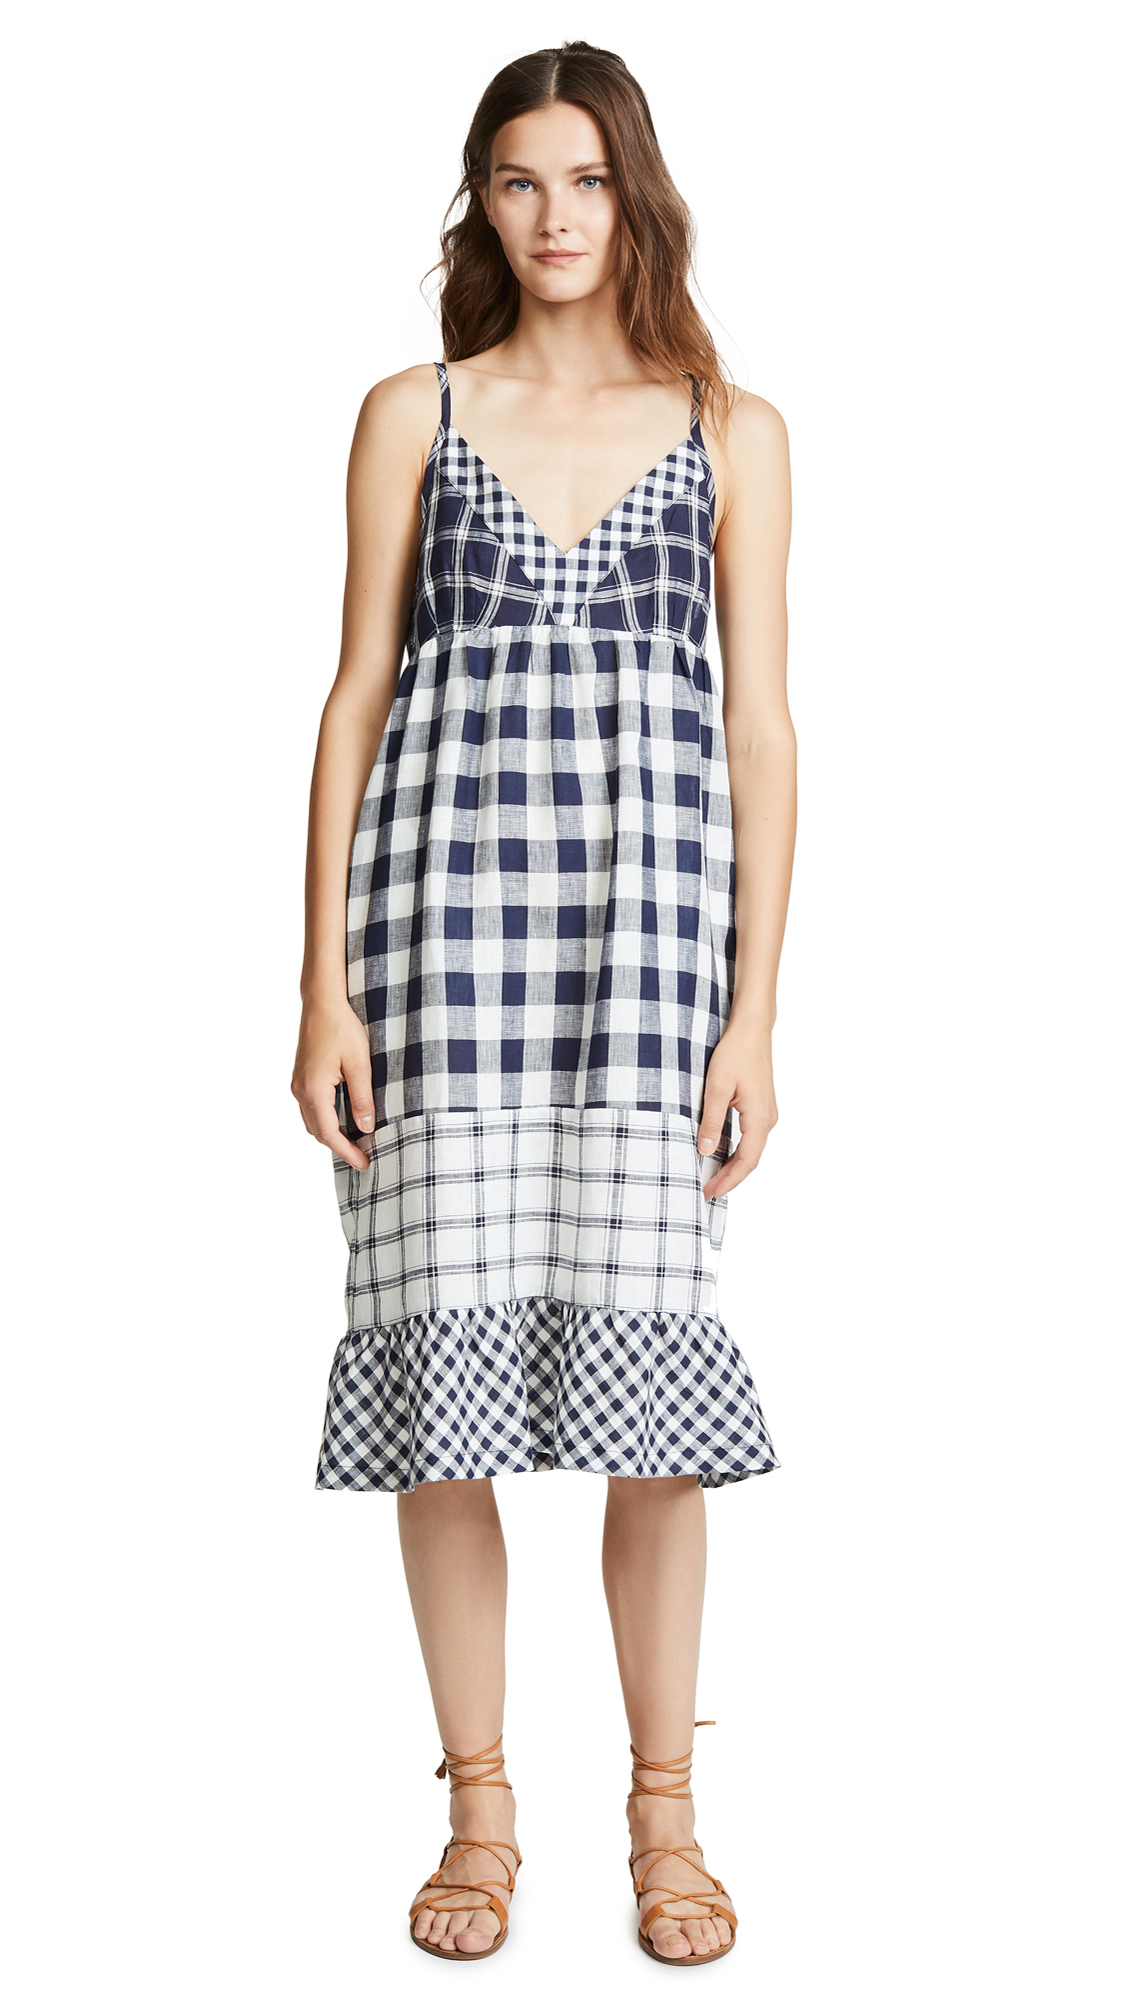 LEE MATHEWS NELLIE TUNIC DRESS